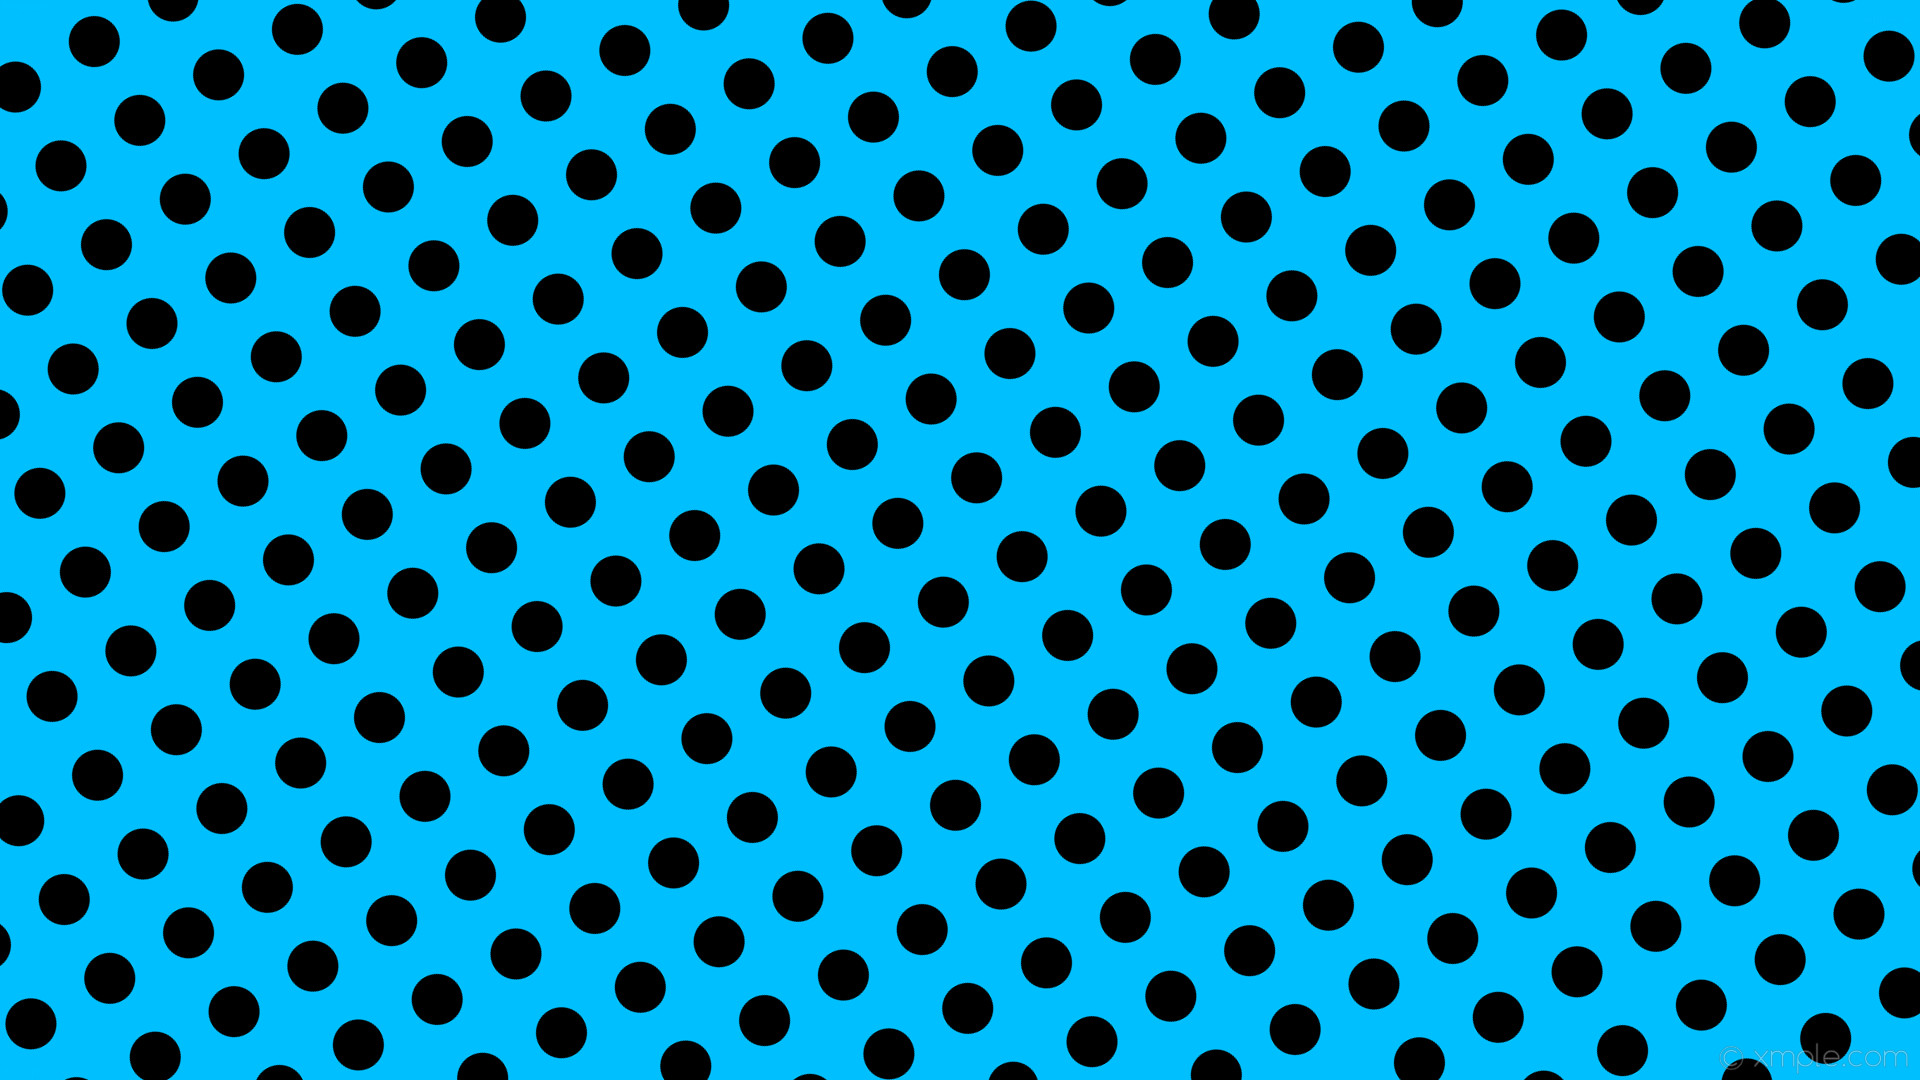 wallpaper black spots blue polka dots deep sky blue #00bfff #000000 30° 51px